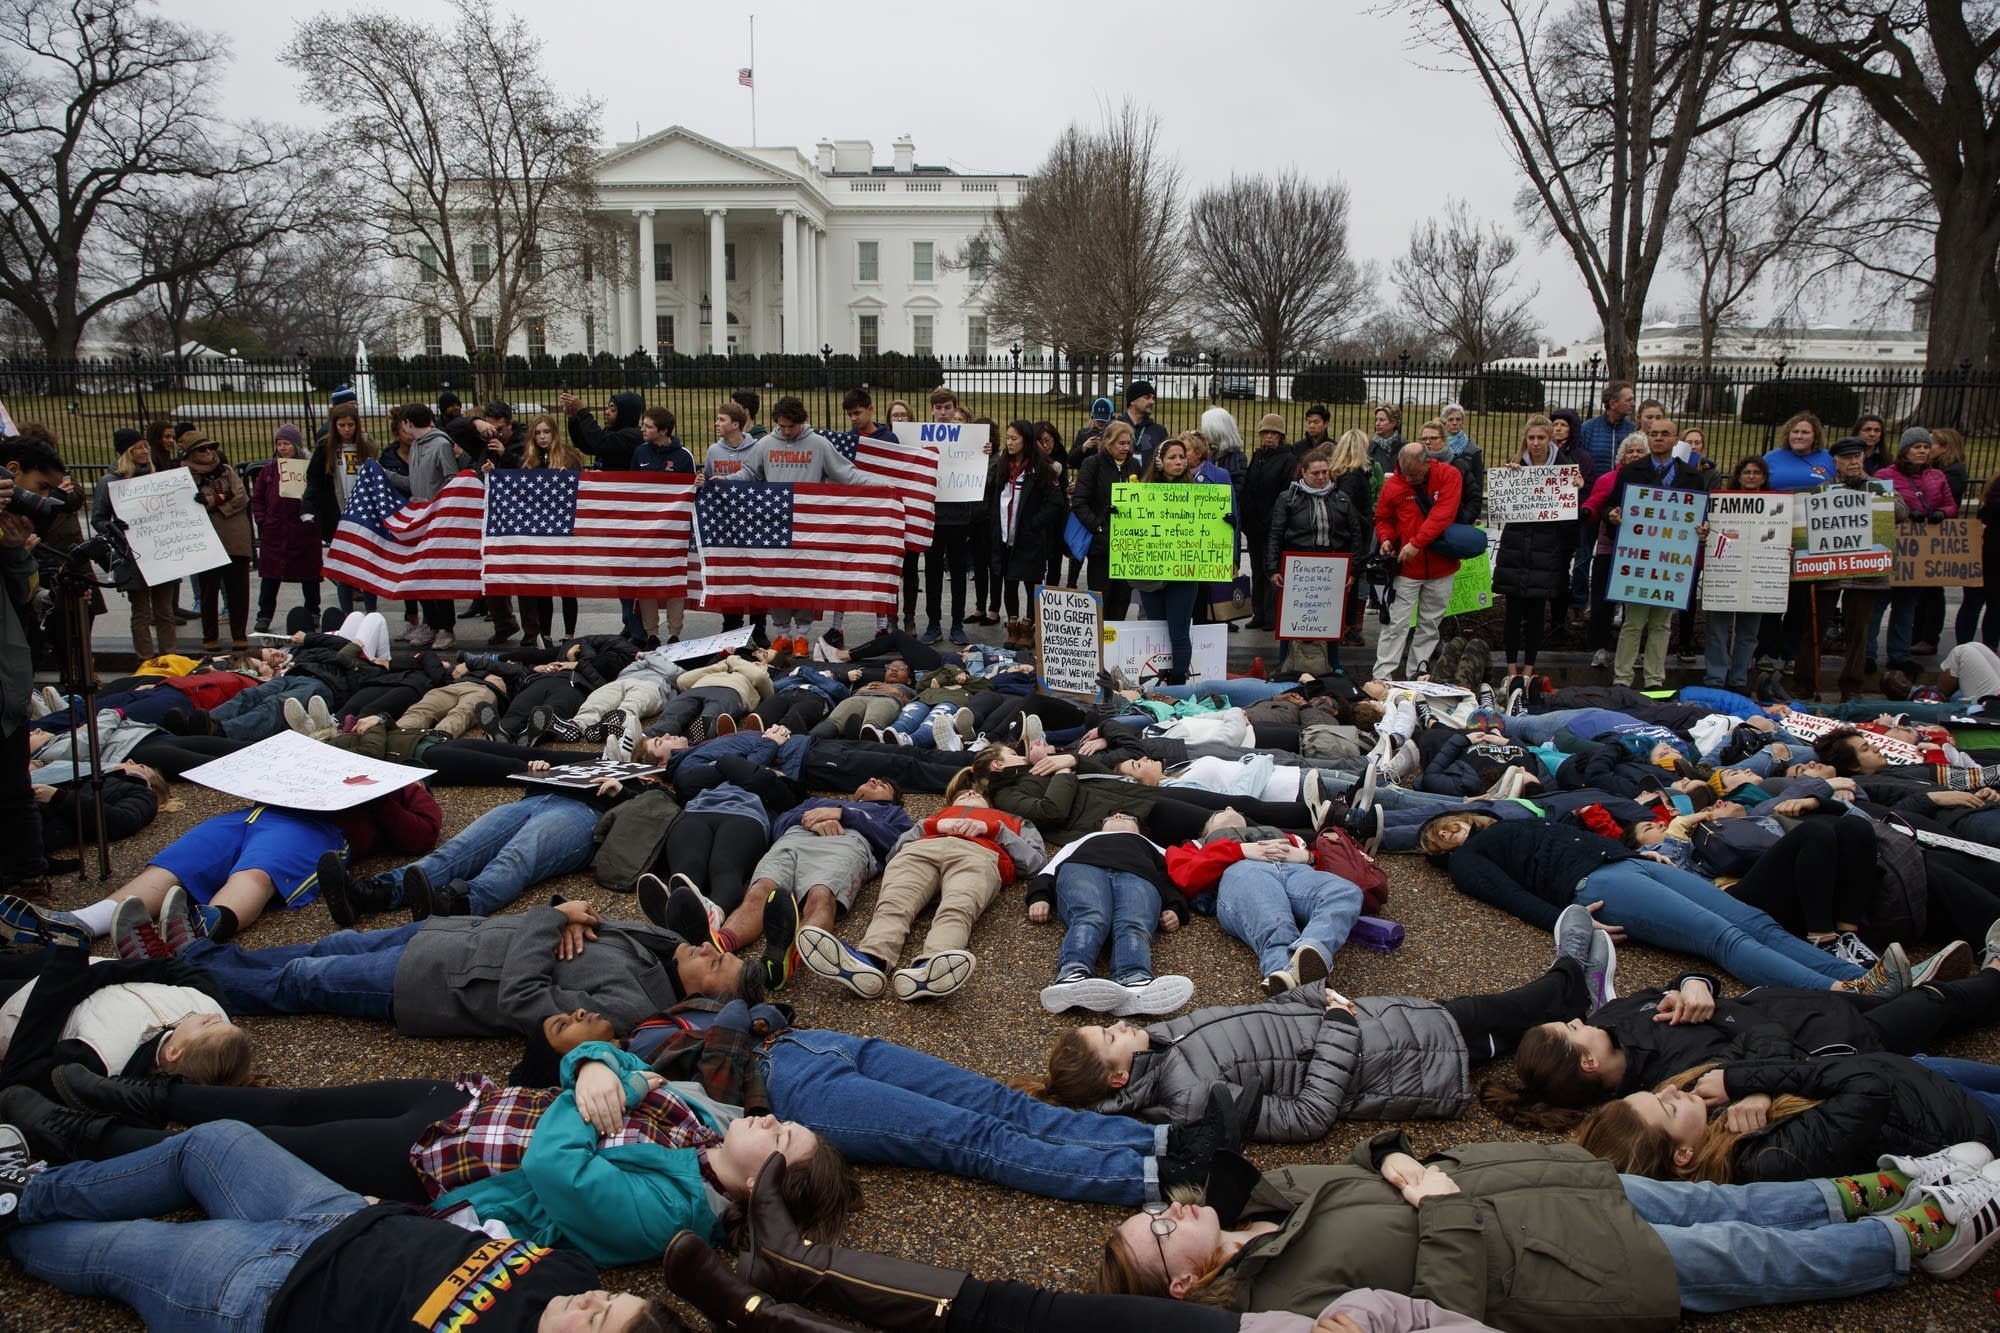 Demonstrators participate in 'lie-in' in wake of Parkland school shooting.